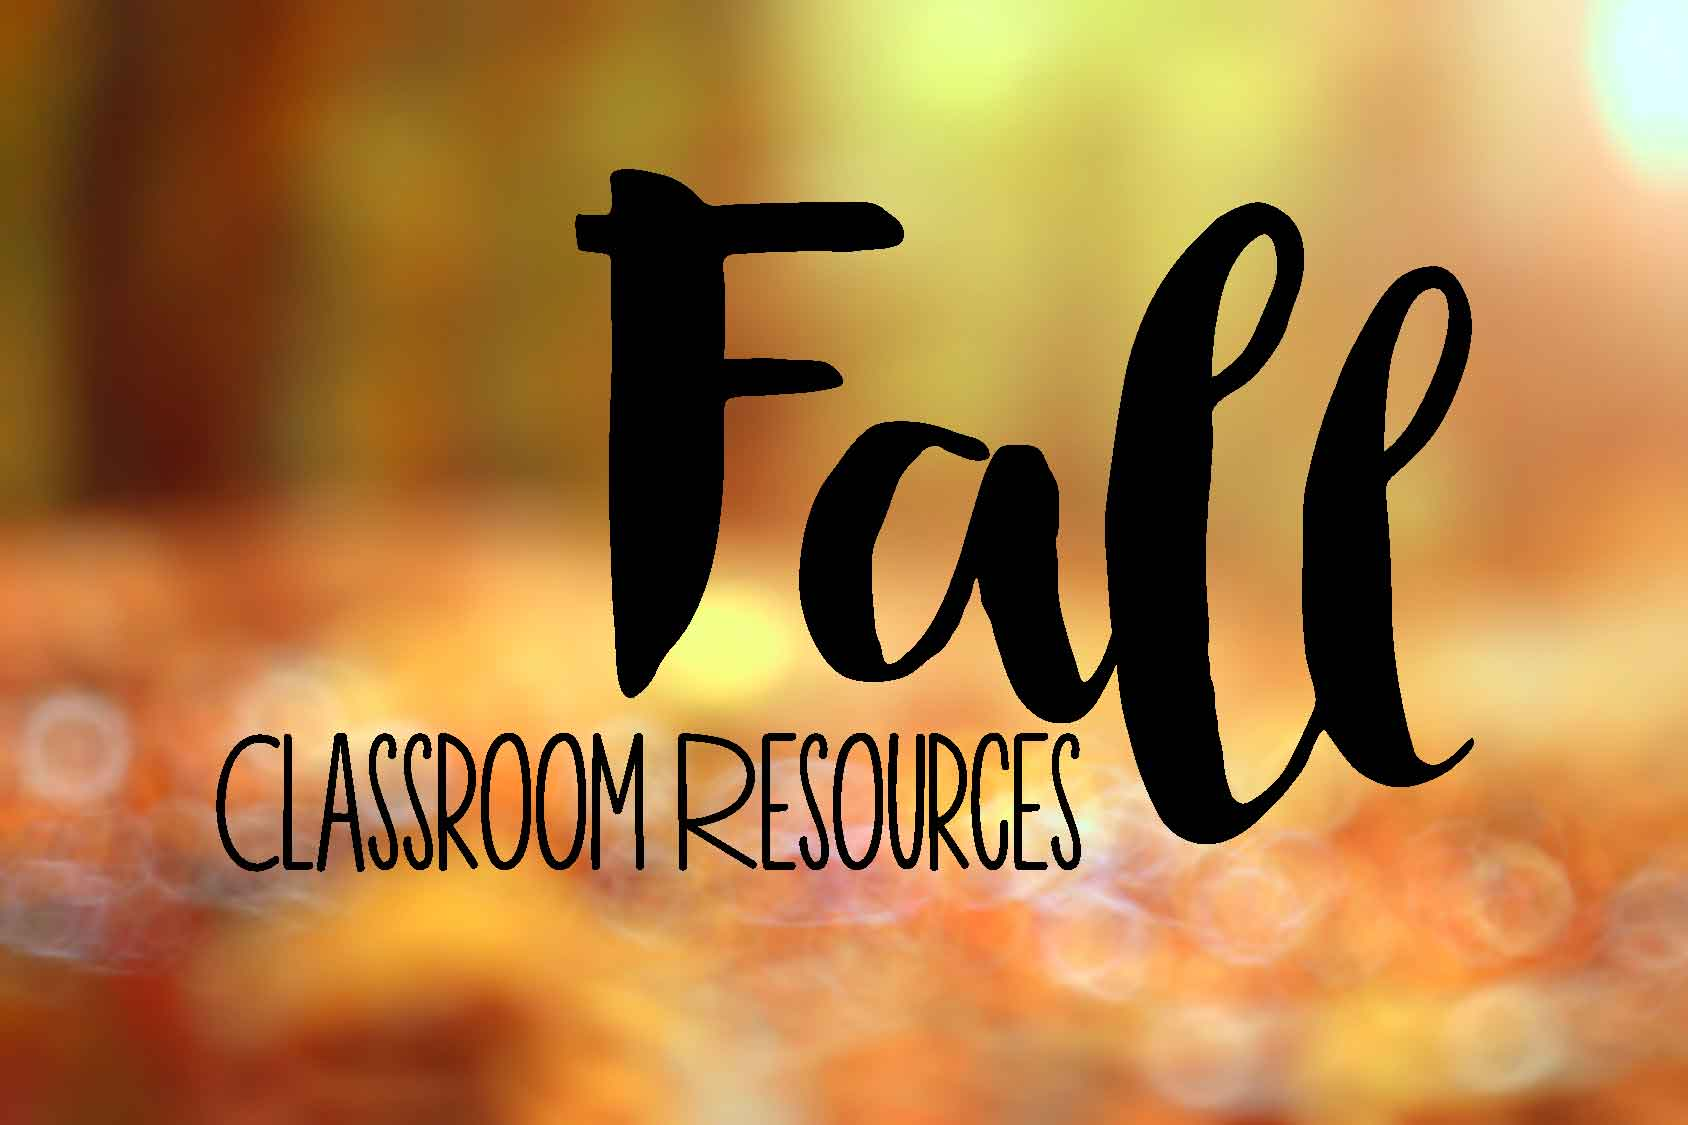 Fall classroom resources